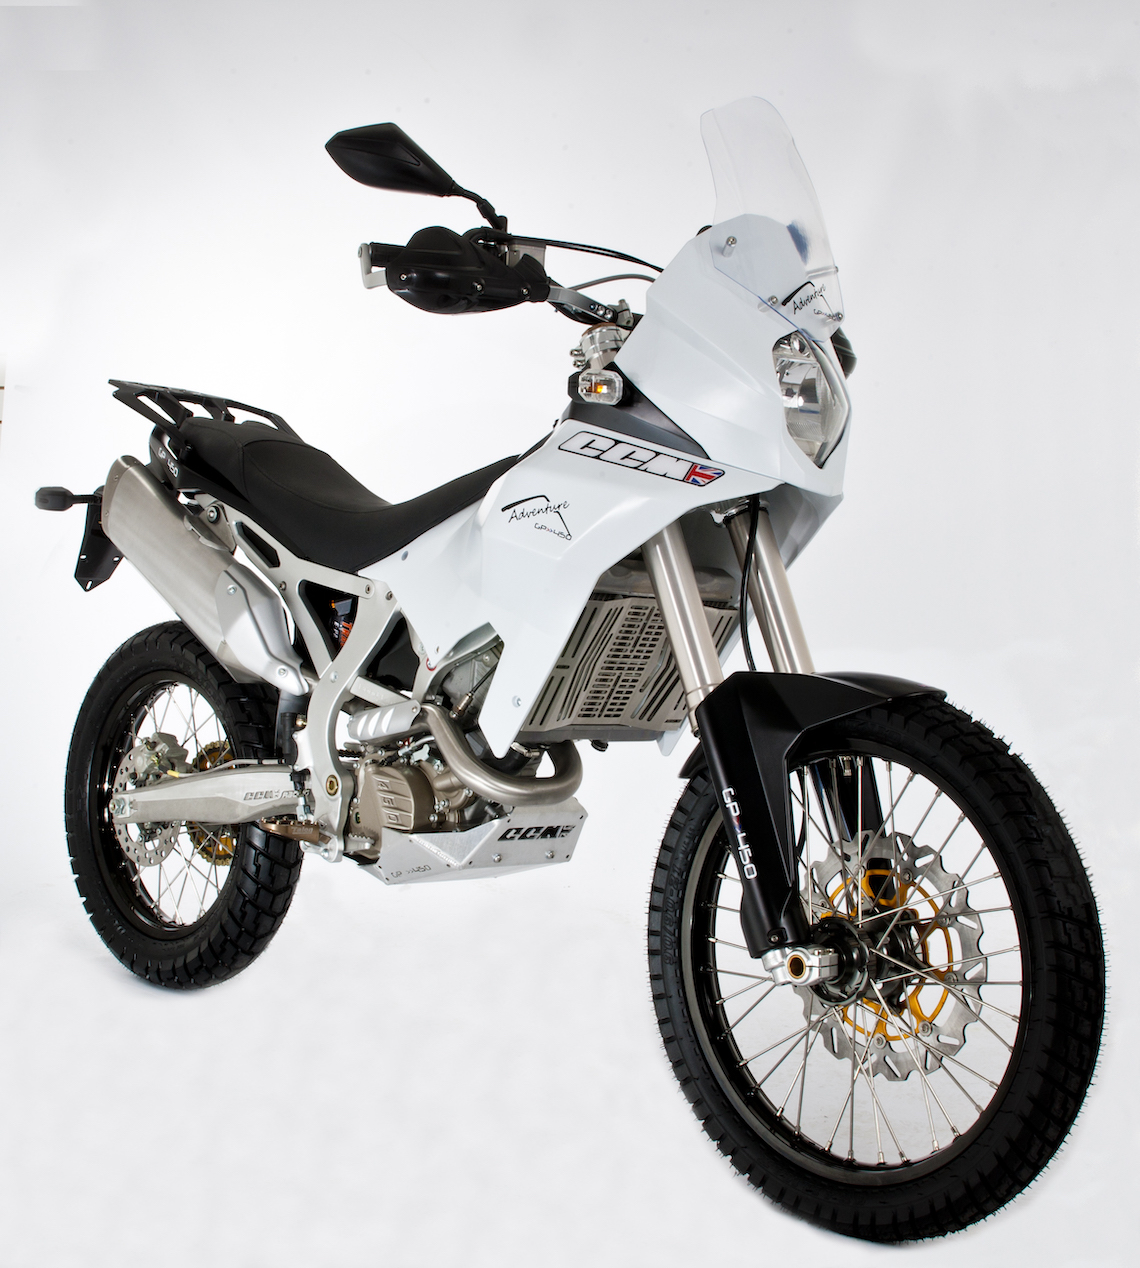 The new CCM GP450 adventure bike due for release in August 2013